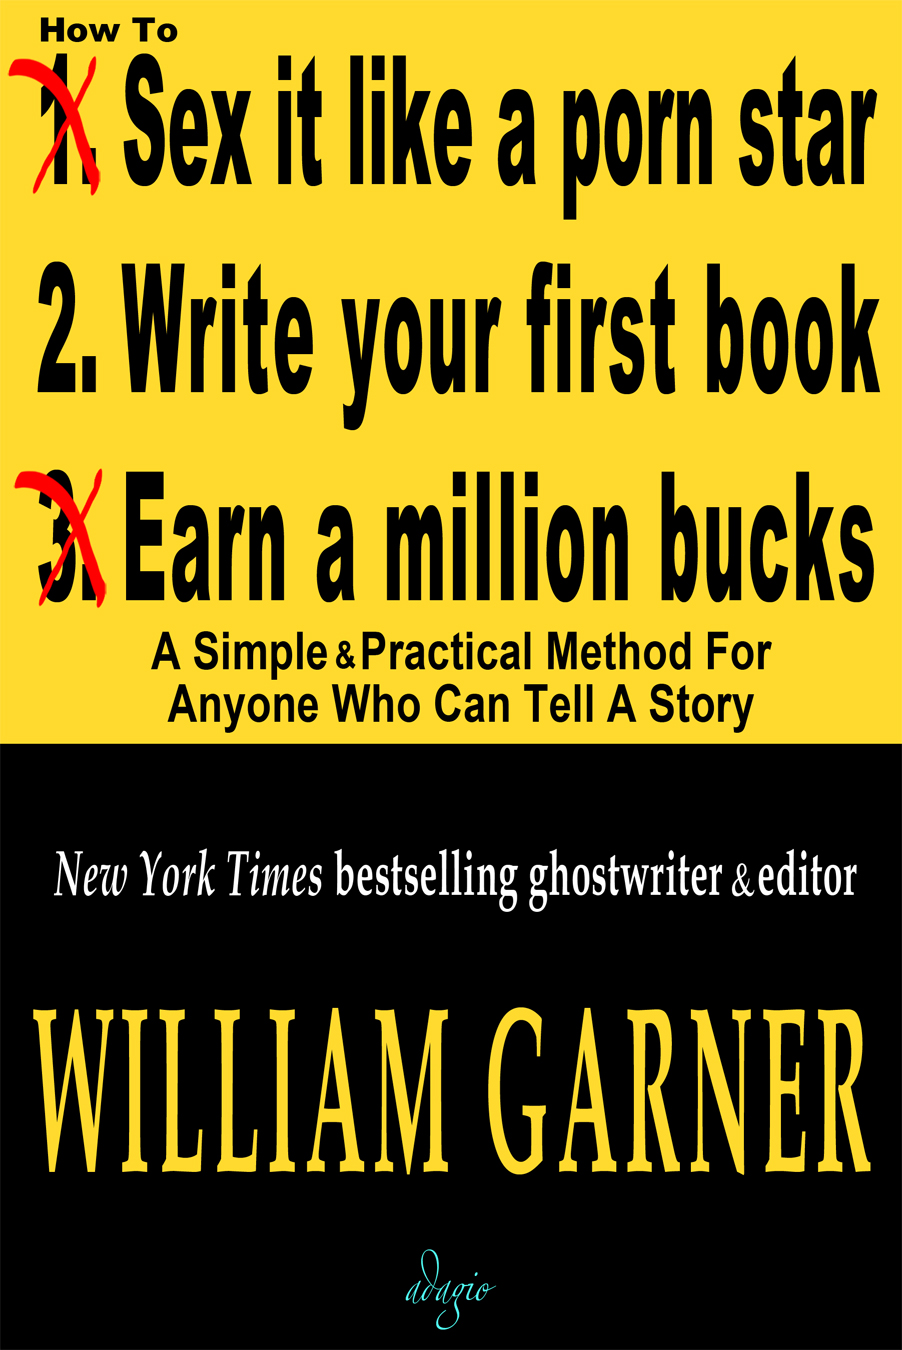 How To Write Your First Book eBook